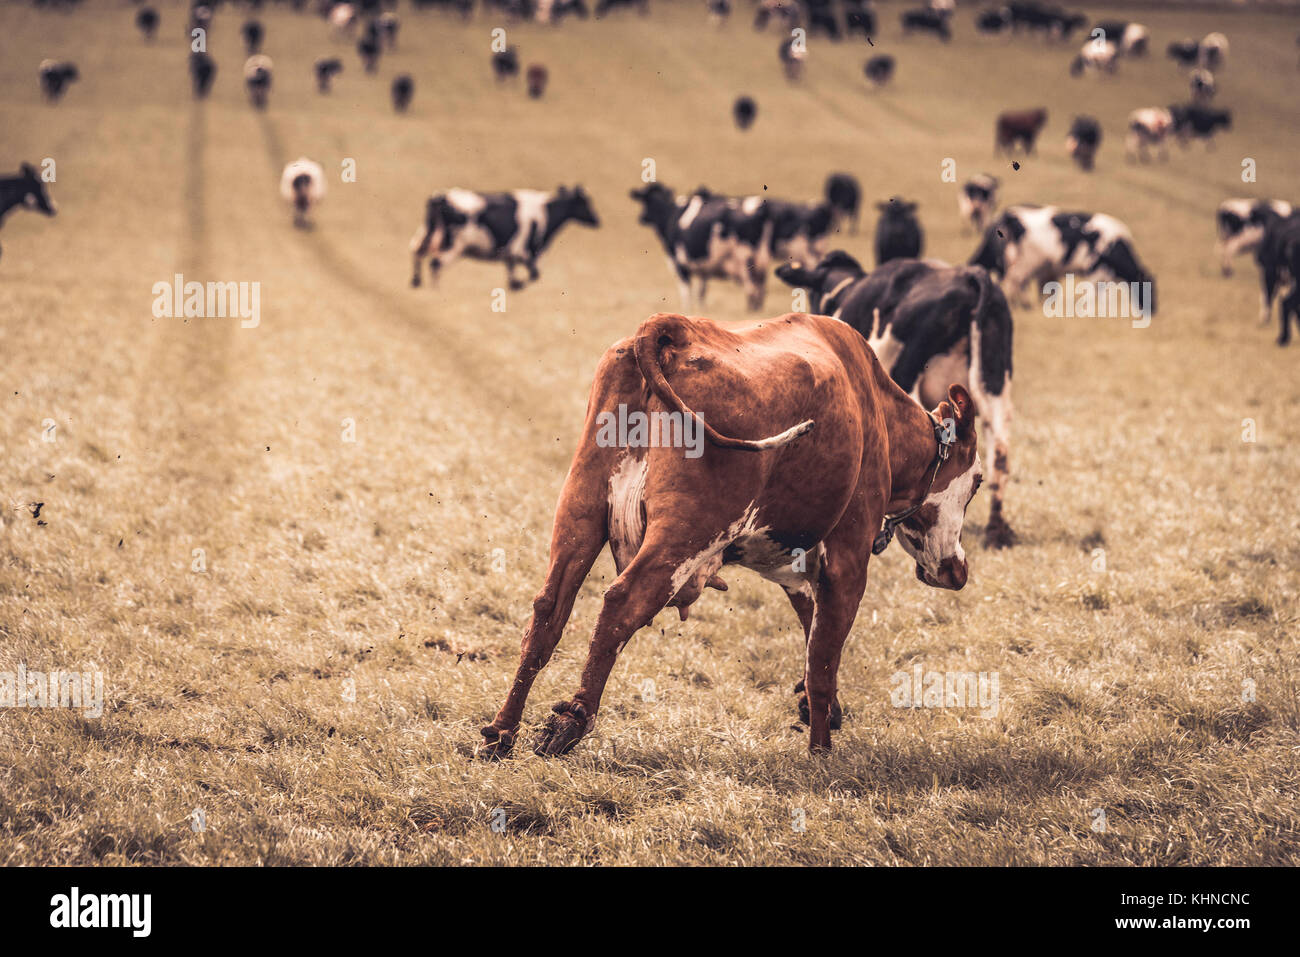 Hereford calf running and jumping on a rural field with black and white cows in the spring - Stock Image